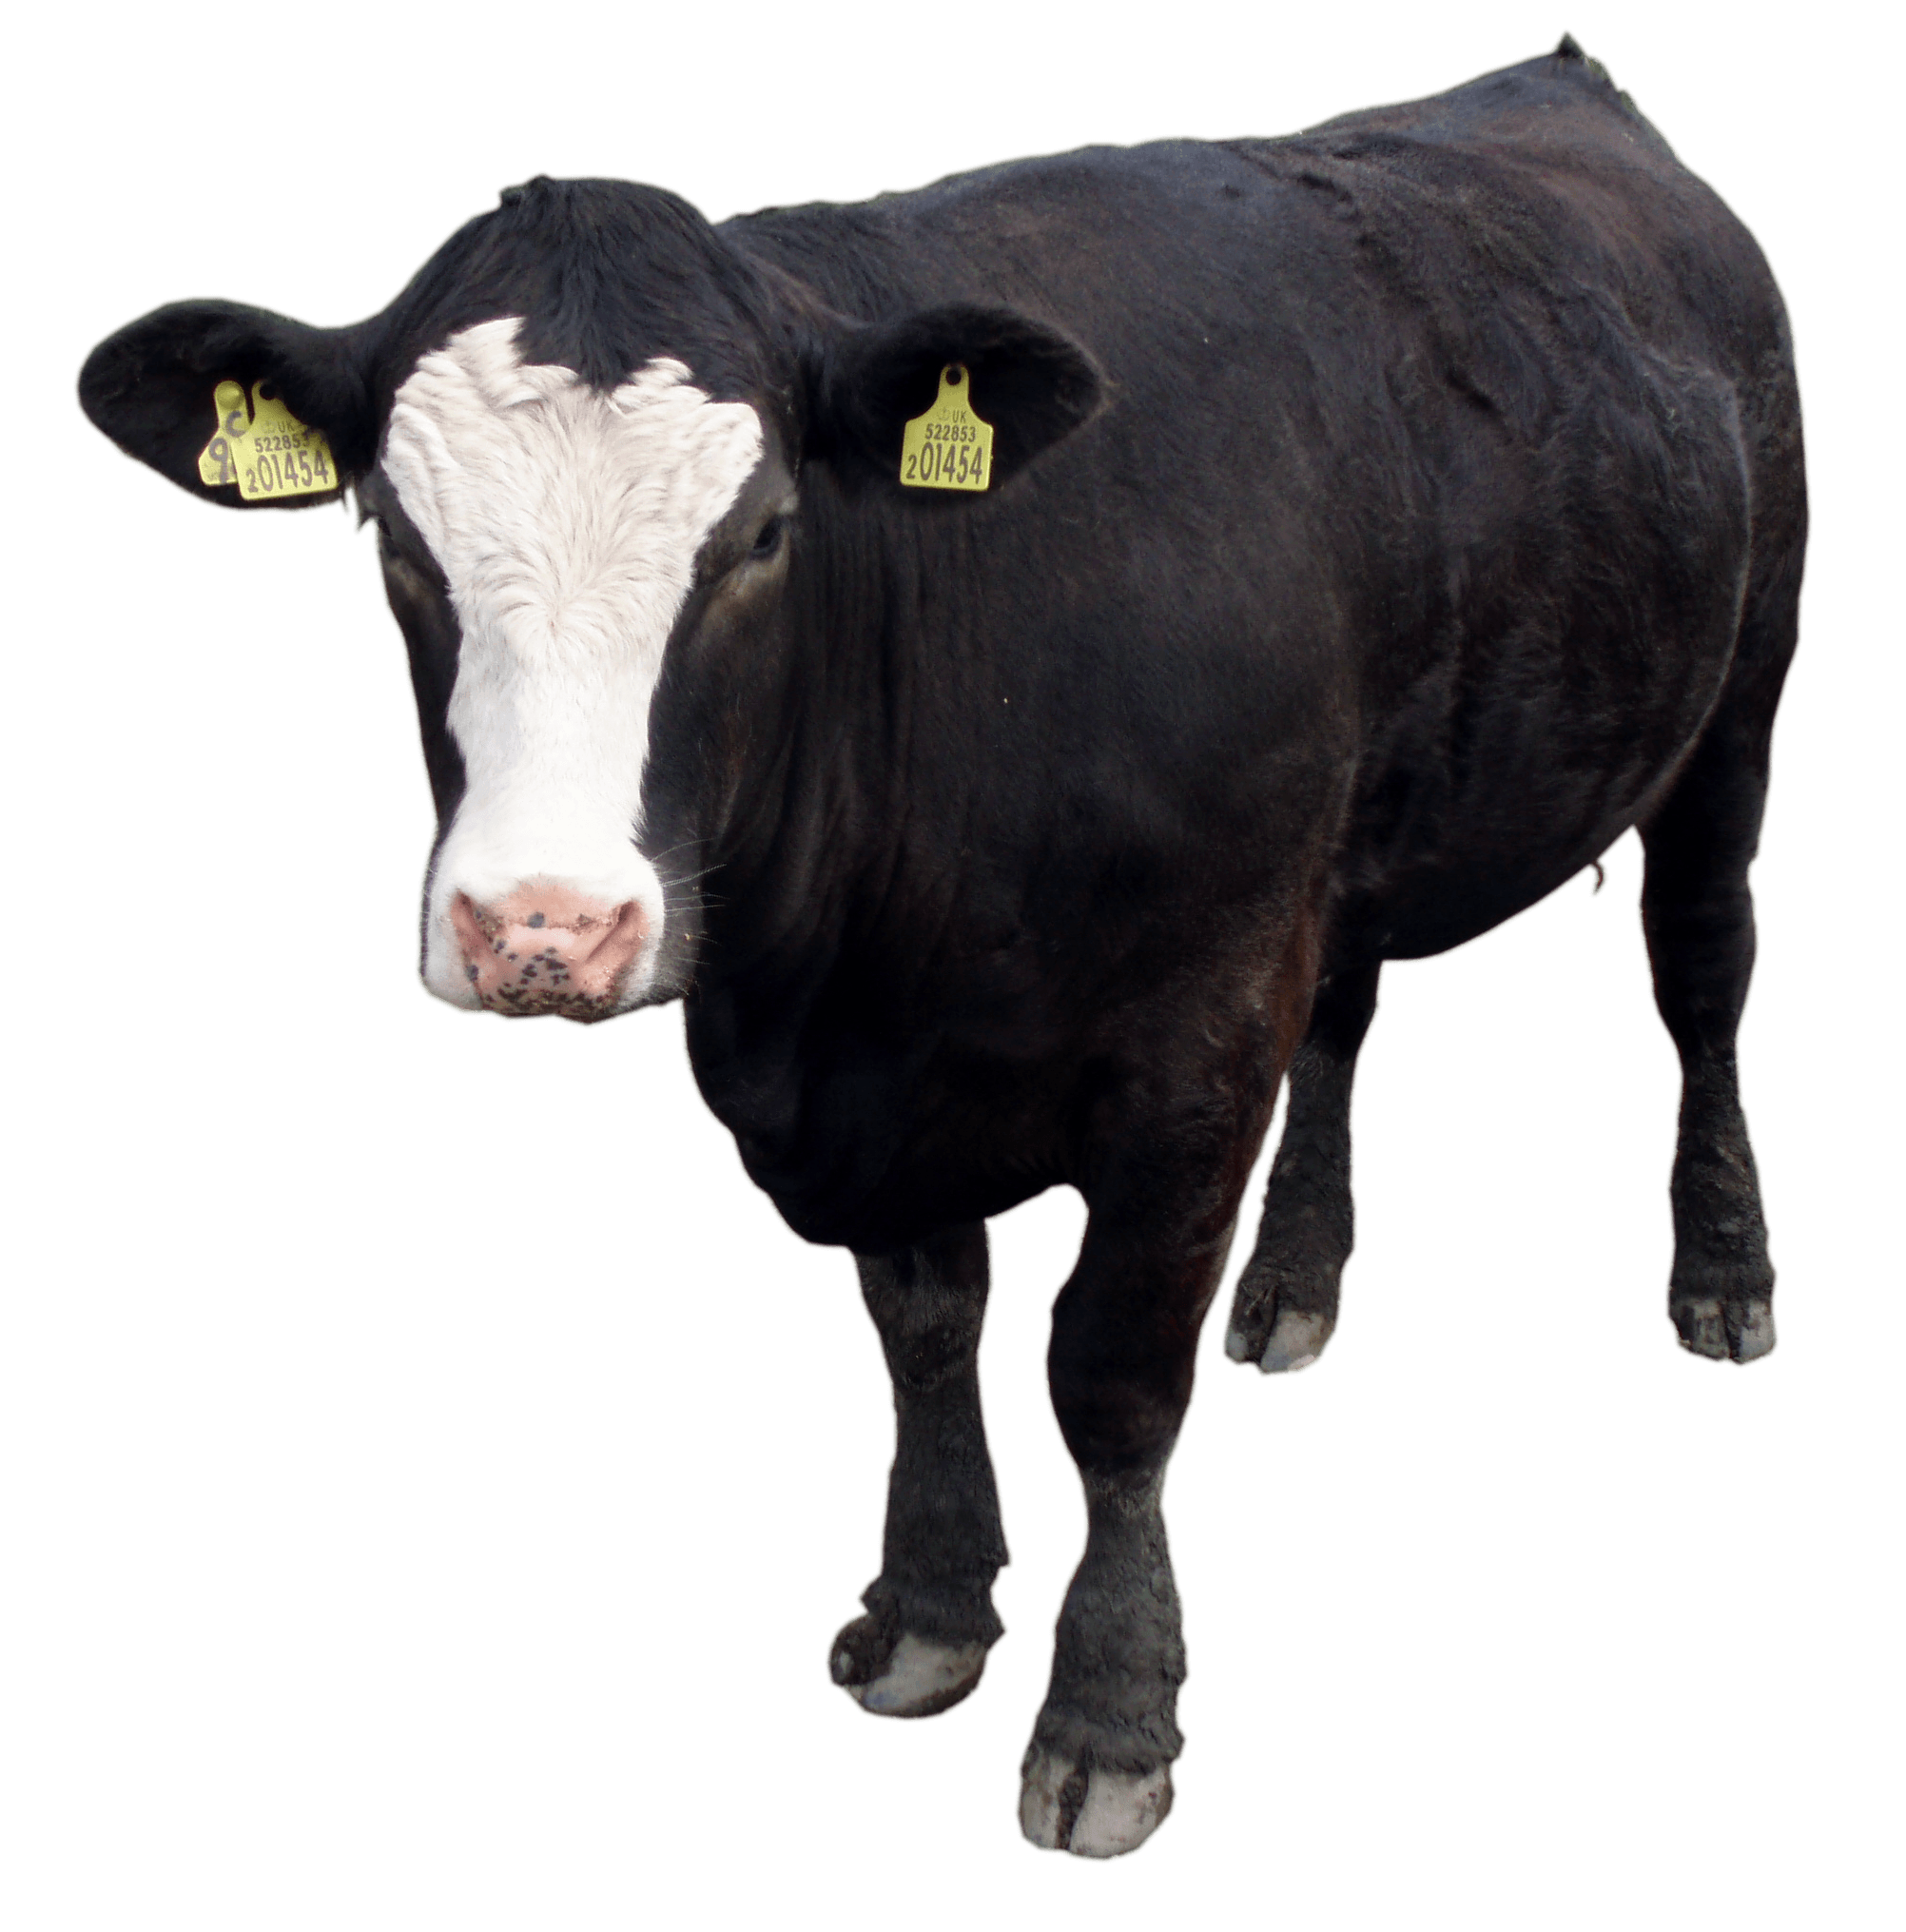 Black Cow Png Image Download Picture PNG Image